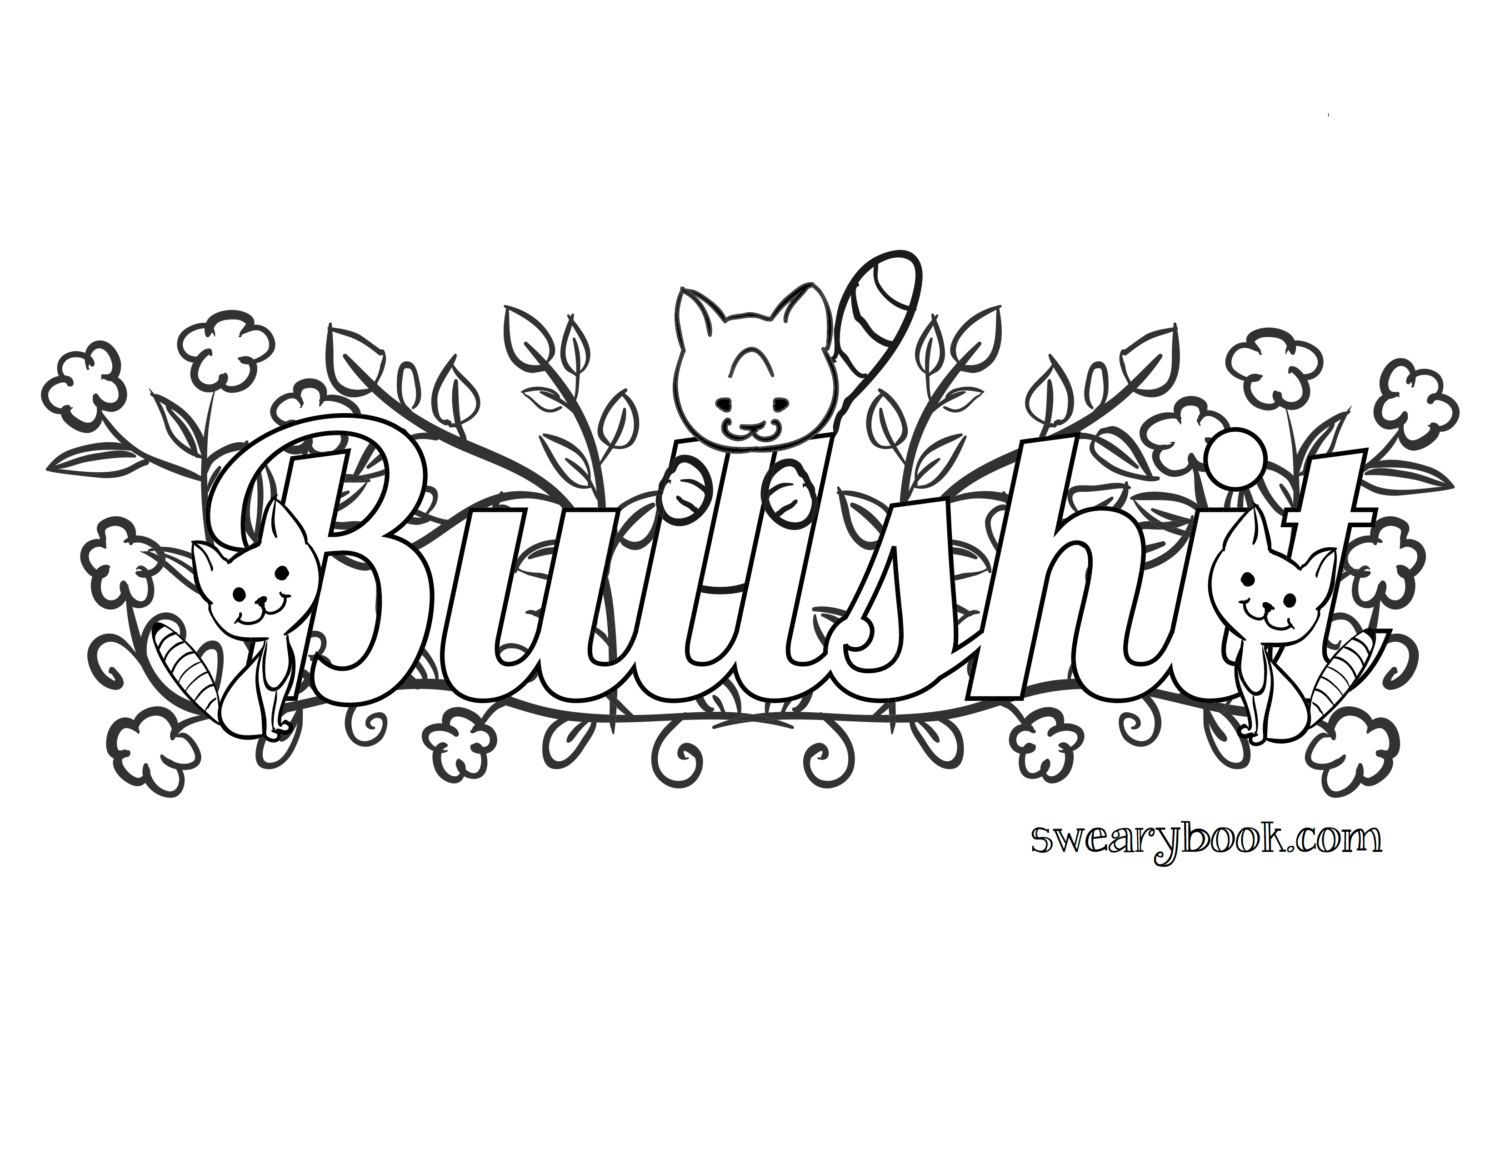 Bullshit Swear Words Coloring Page From The Sweary By Swearybook Davlin Publishing Adultcoloring